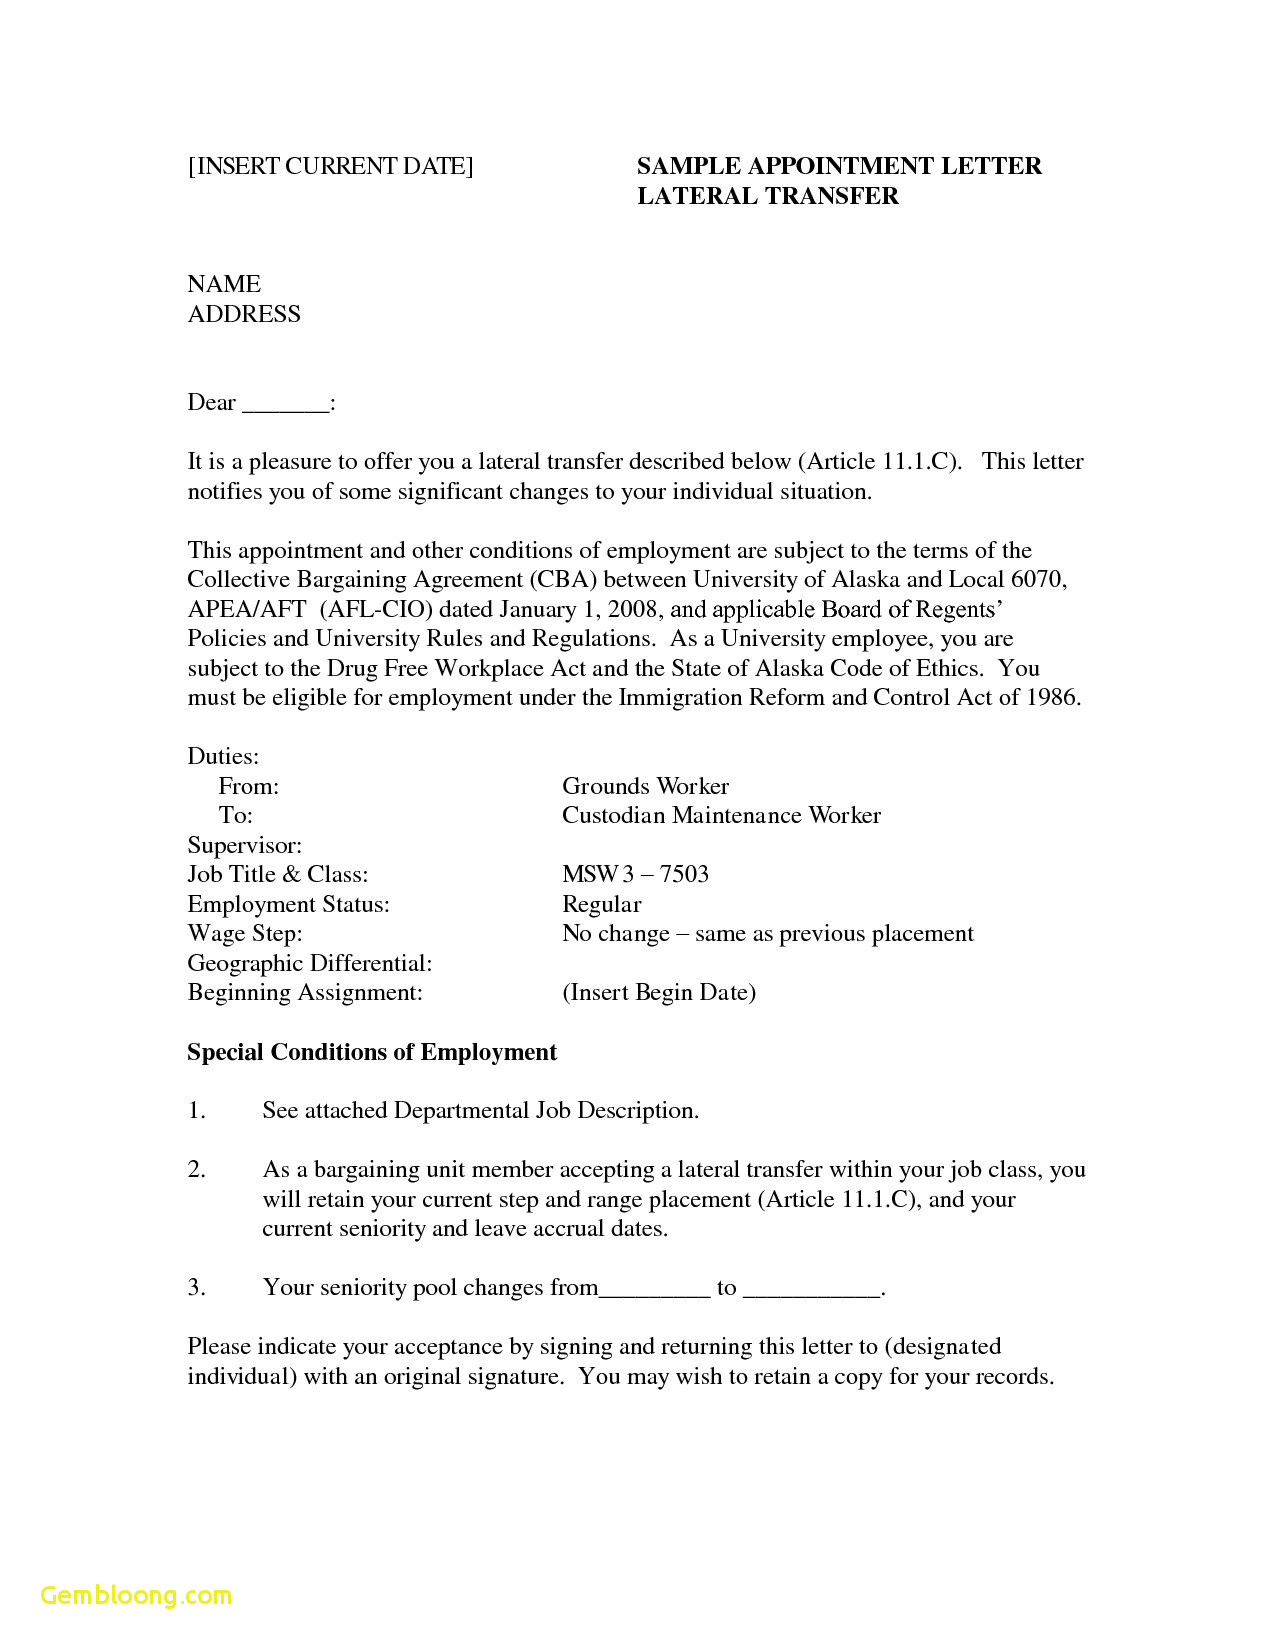 employment cover letter template word example-Word Resume Samples Download Cover Letter Template Word 2014 Fresh Relocation Cover Letters Od 14-j